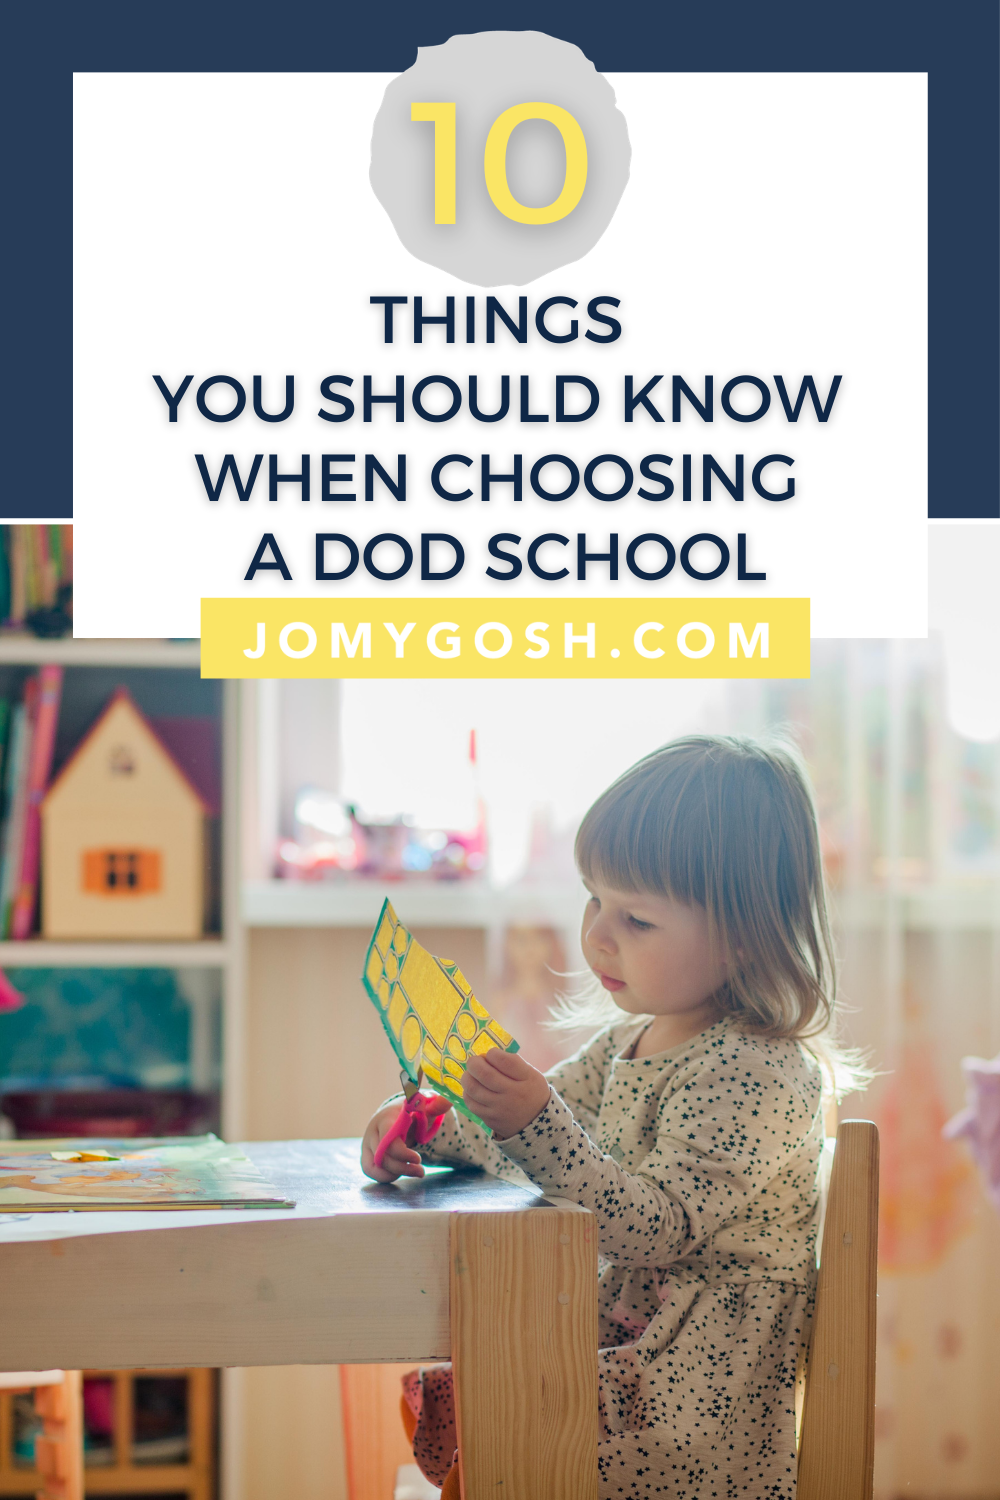 For military families, choosing whether their children will attend a DoD school is a big decision. Here's absolutely what you need to know about your military child's education at a DoDEA school #military #pcs #oconus #militaryfamily #milfam #militarychild #militarybrat